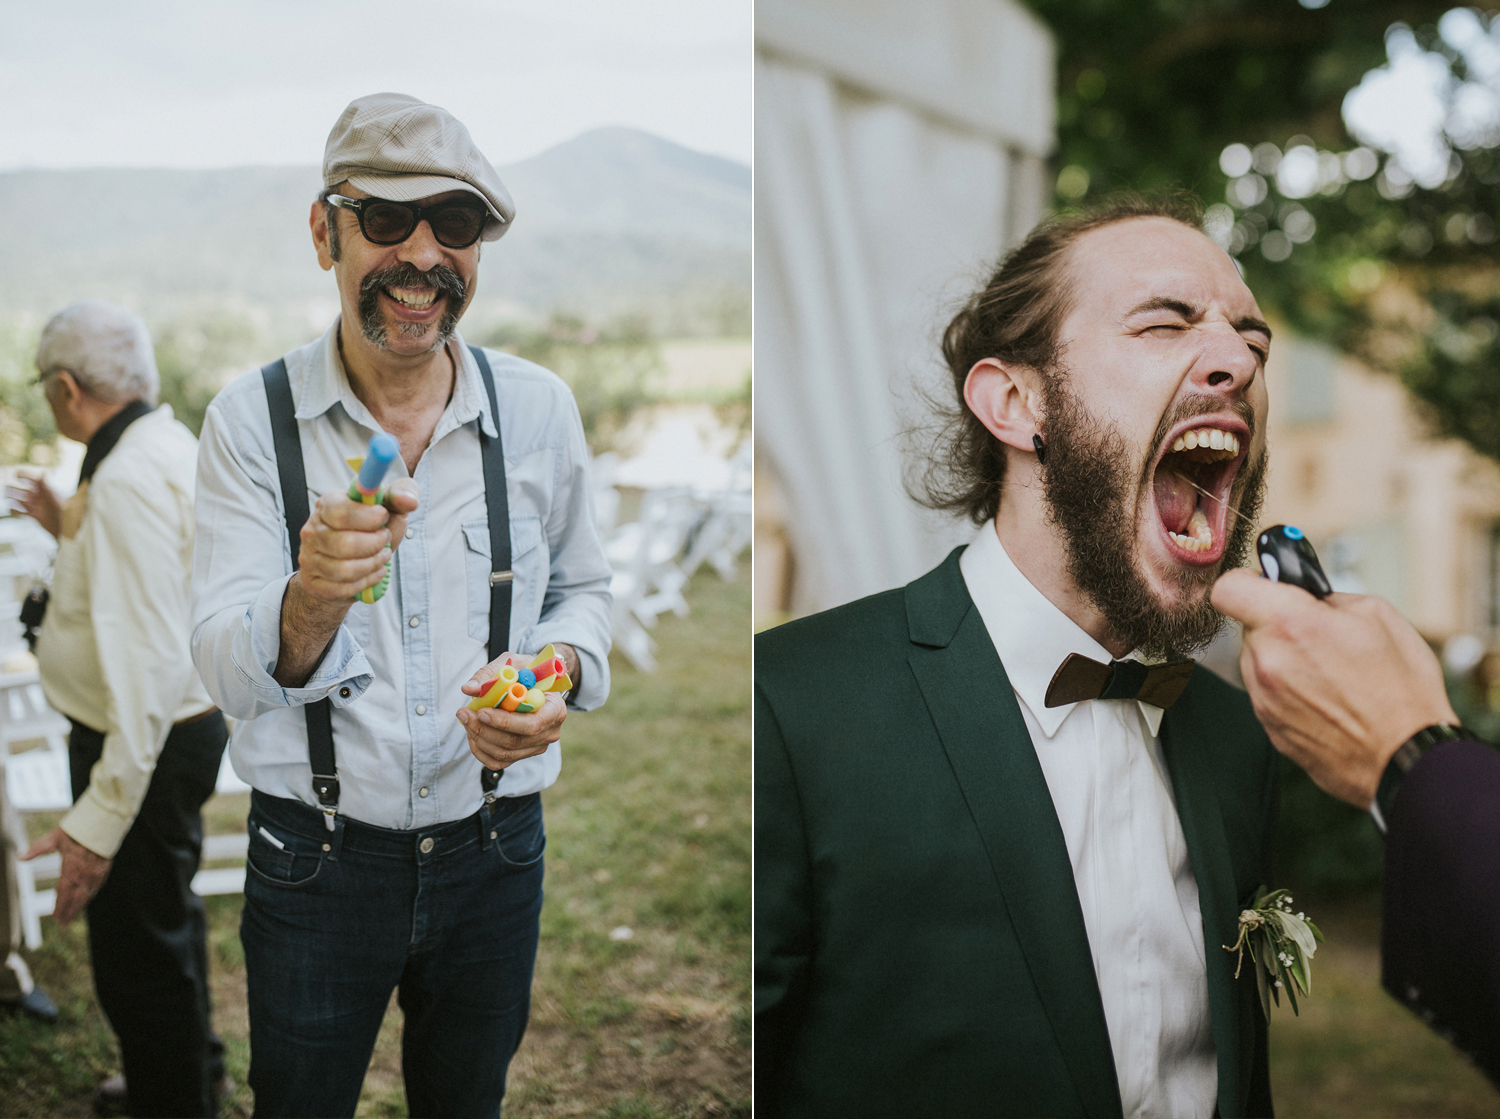 Mariage_champetre_whisky.jpg